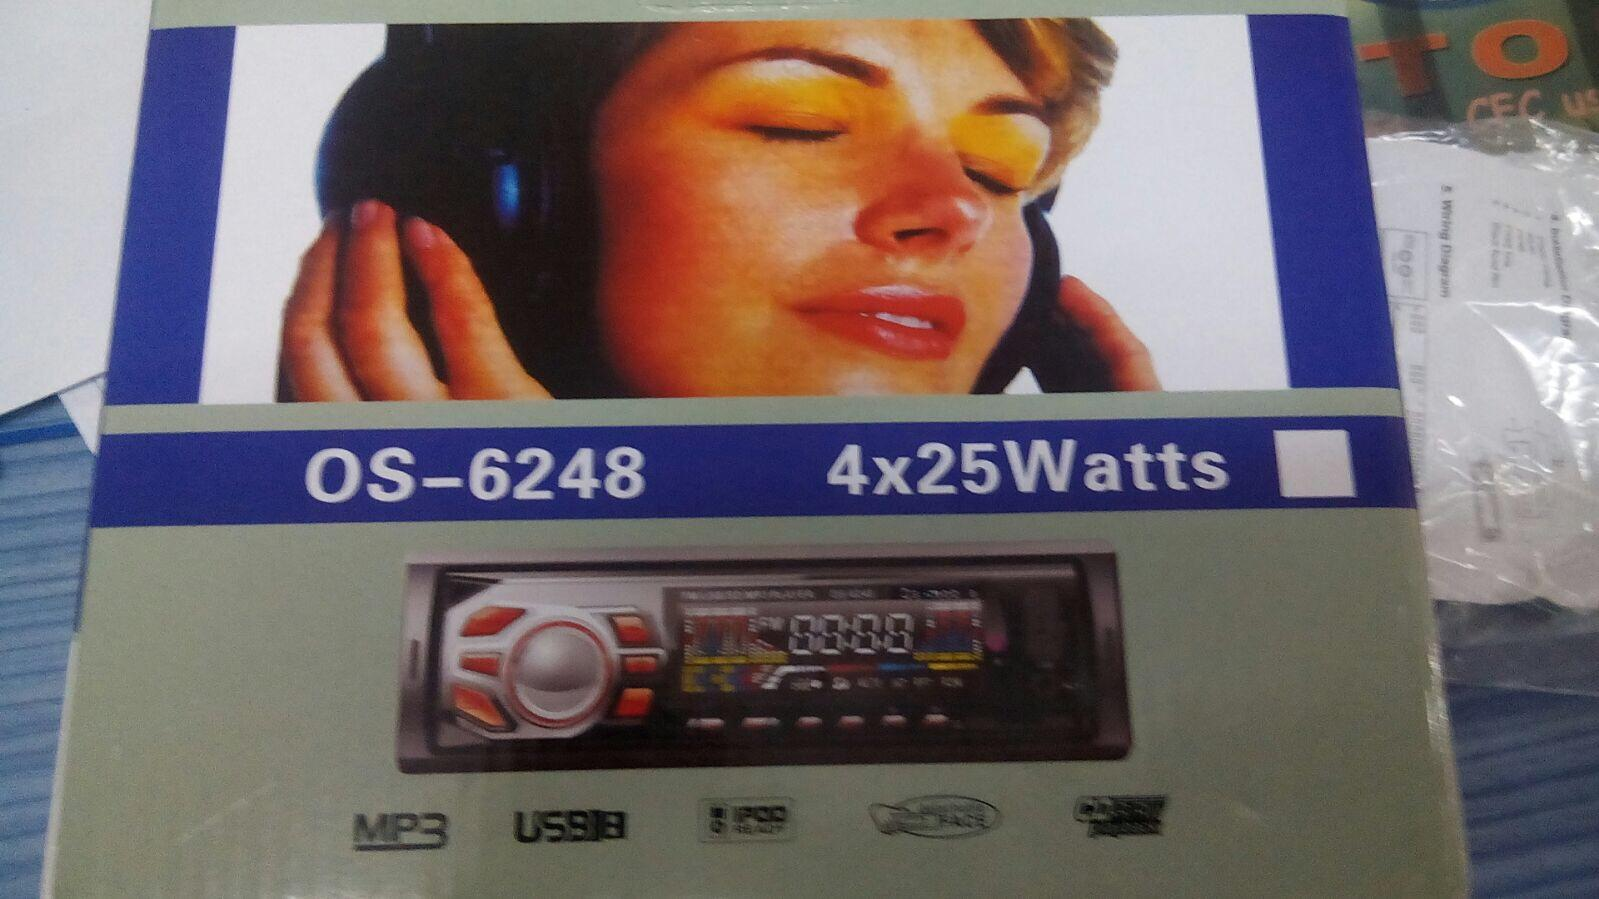 OS Audio FM USB car player